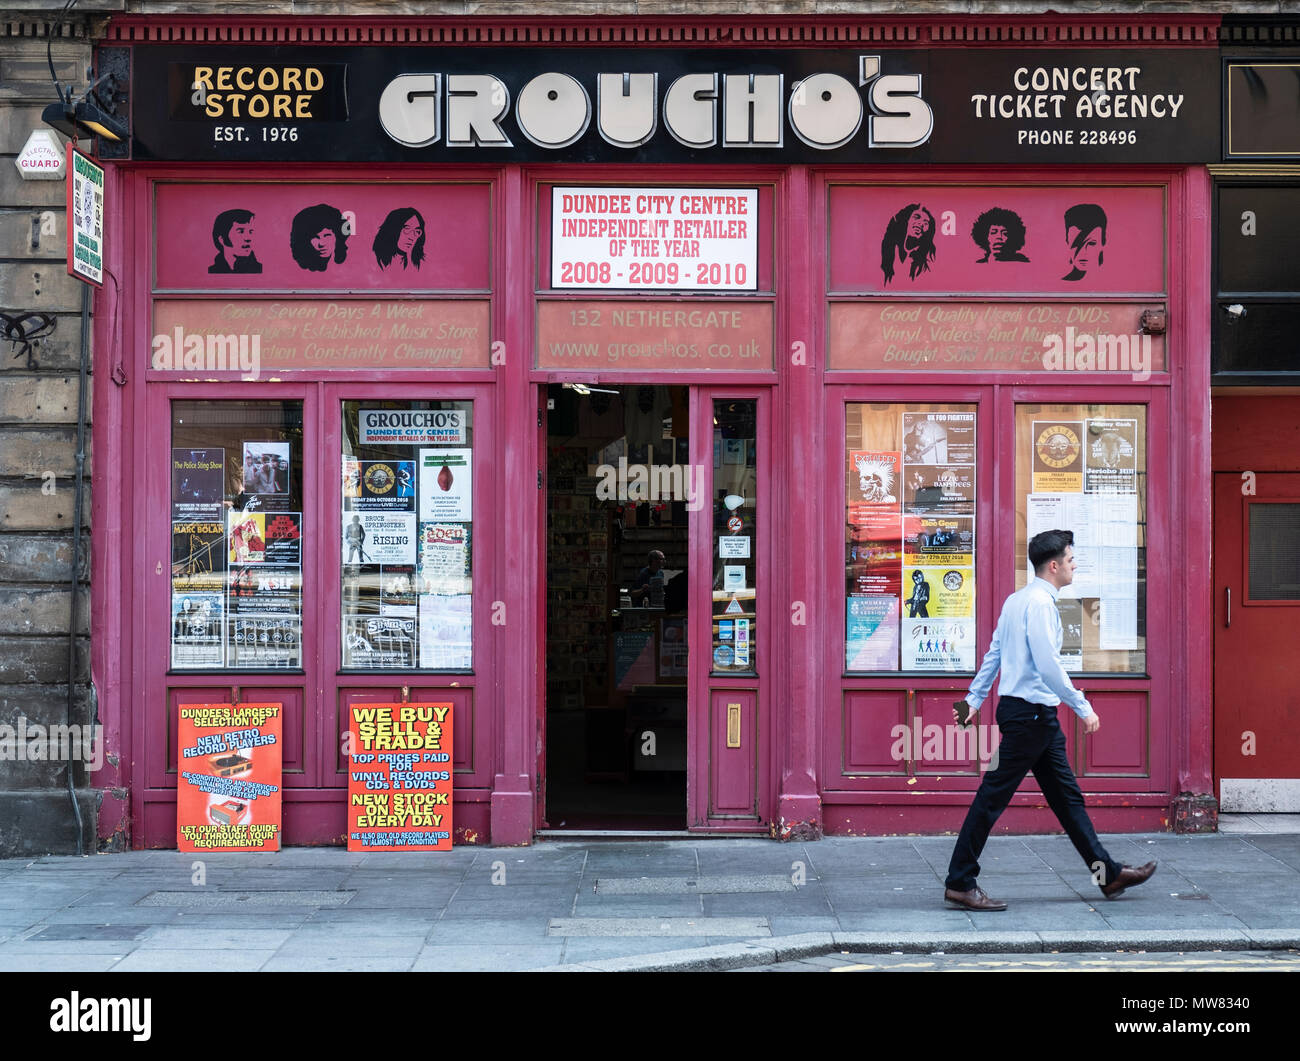 Exterior of Groucho's second hand record shop in Dundee, Scotland, UK - Stock Image